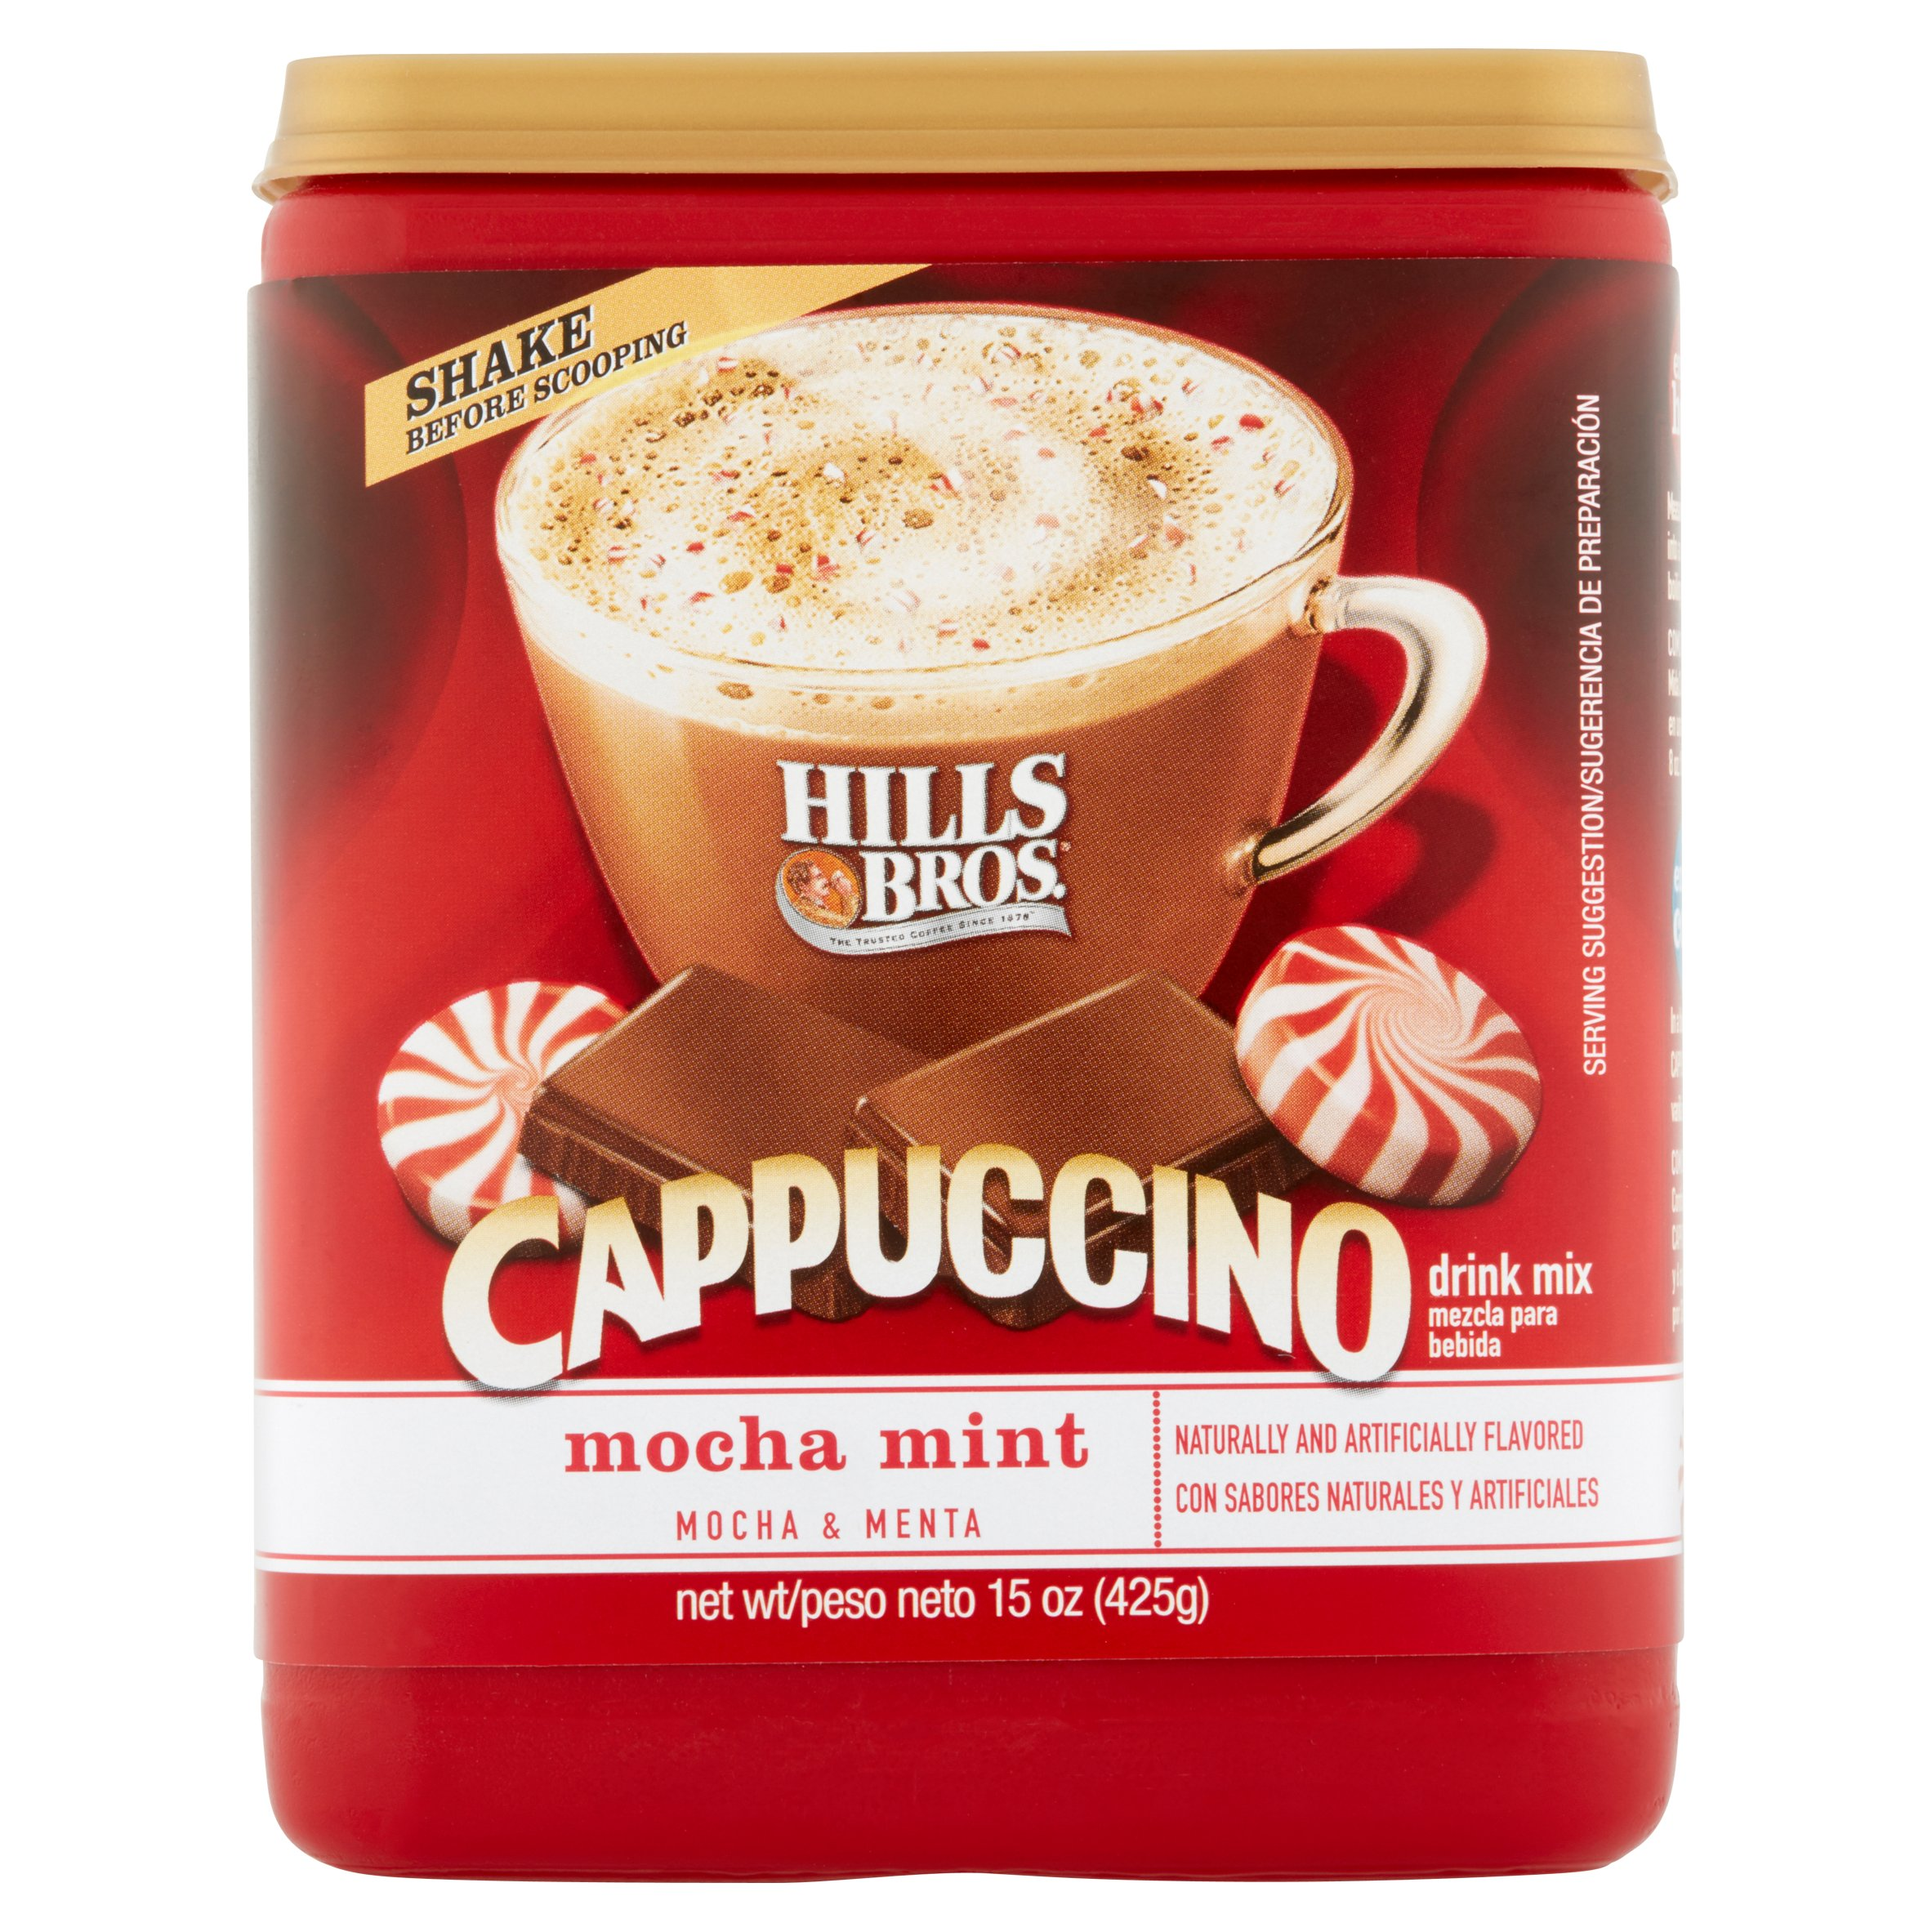 Hills Bros Drink Mix, Cappucino Mocha Mint, 16 Oz, 1 Count